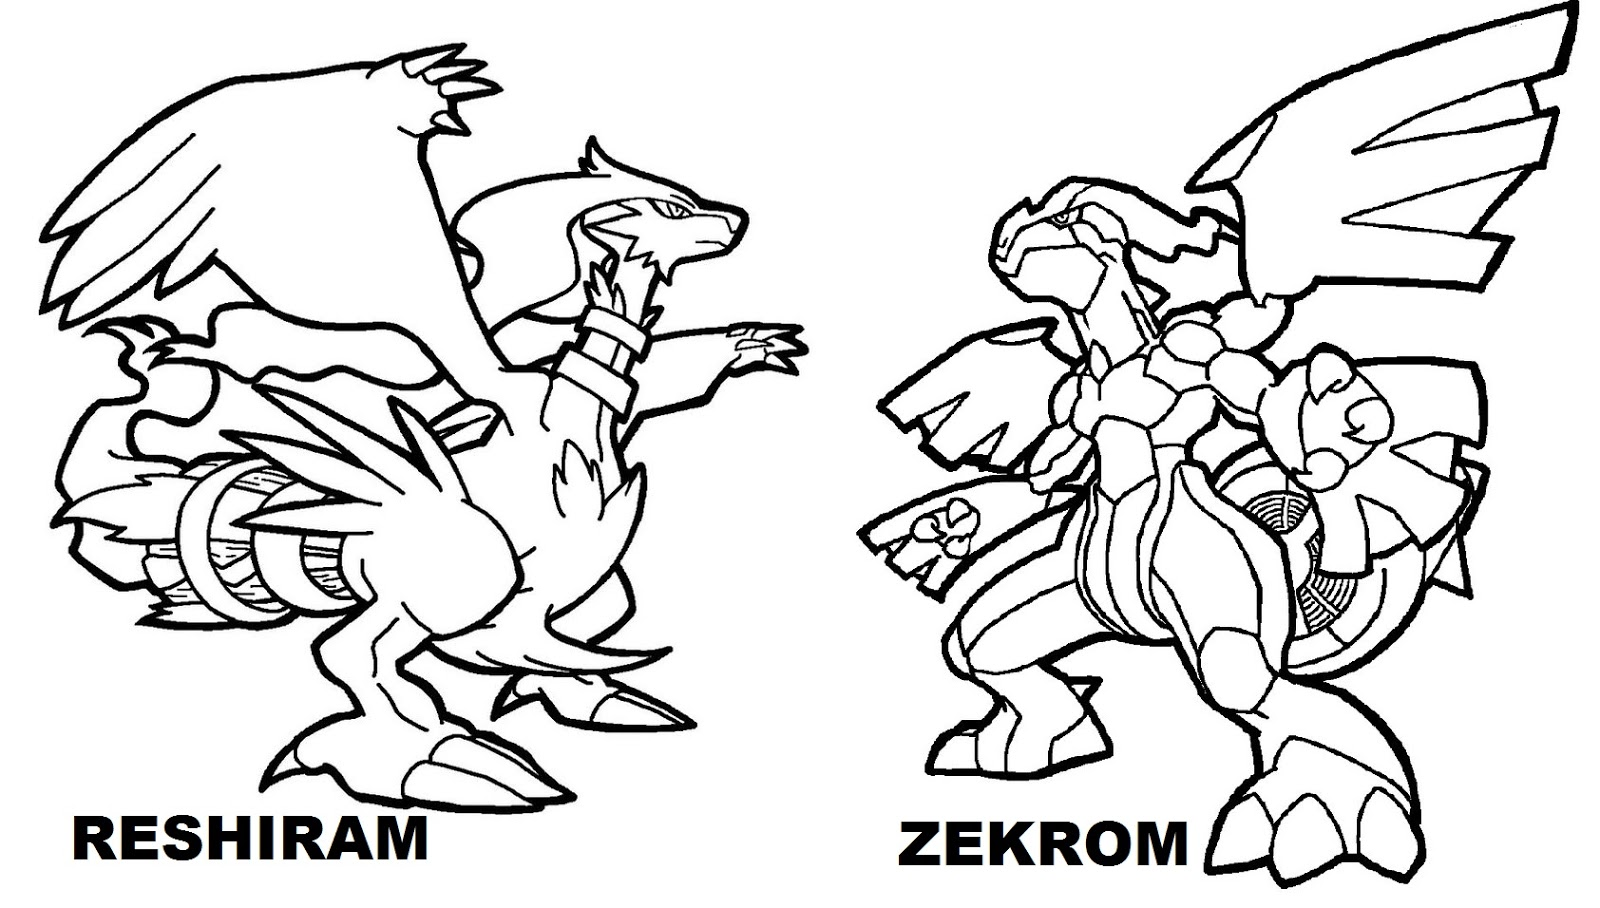 zekrom ex coloring pages | Free Legendary Pokemon Coloring Pages For Kids